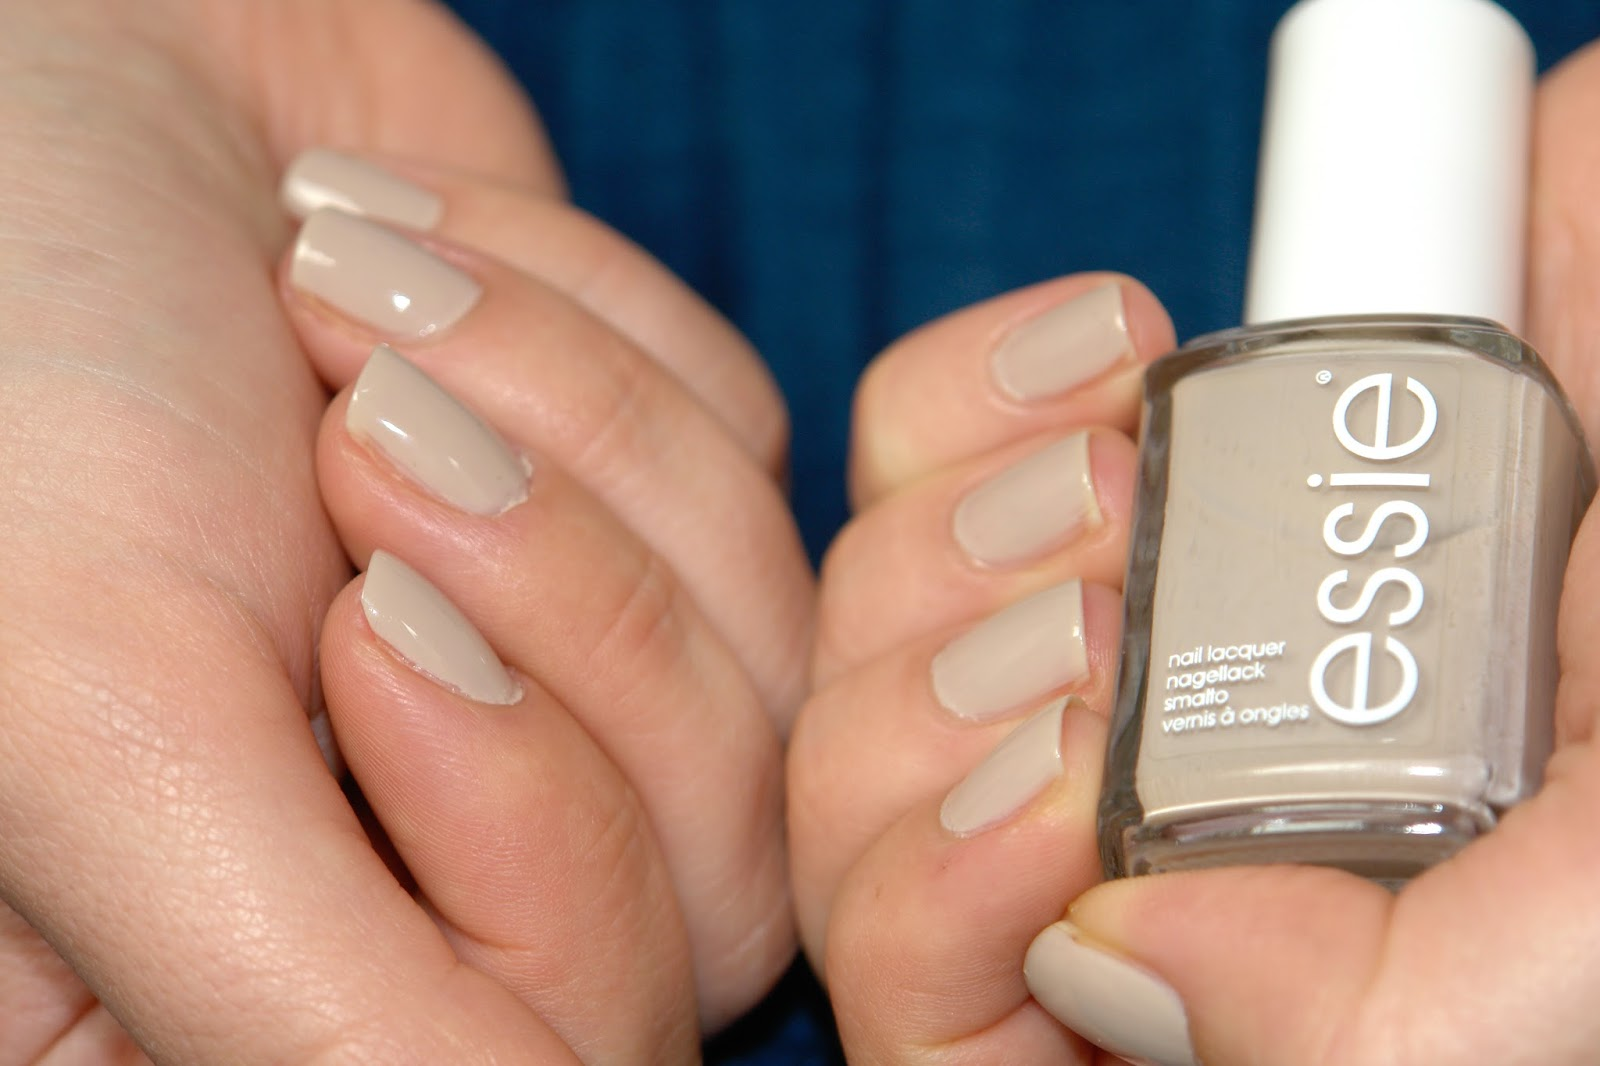 NAILS: Essie sand tropez, nail polish, nails, NOTD, Essie, review, swatches, UK blog, beauty blogger